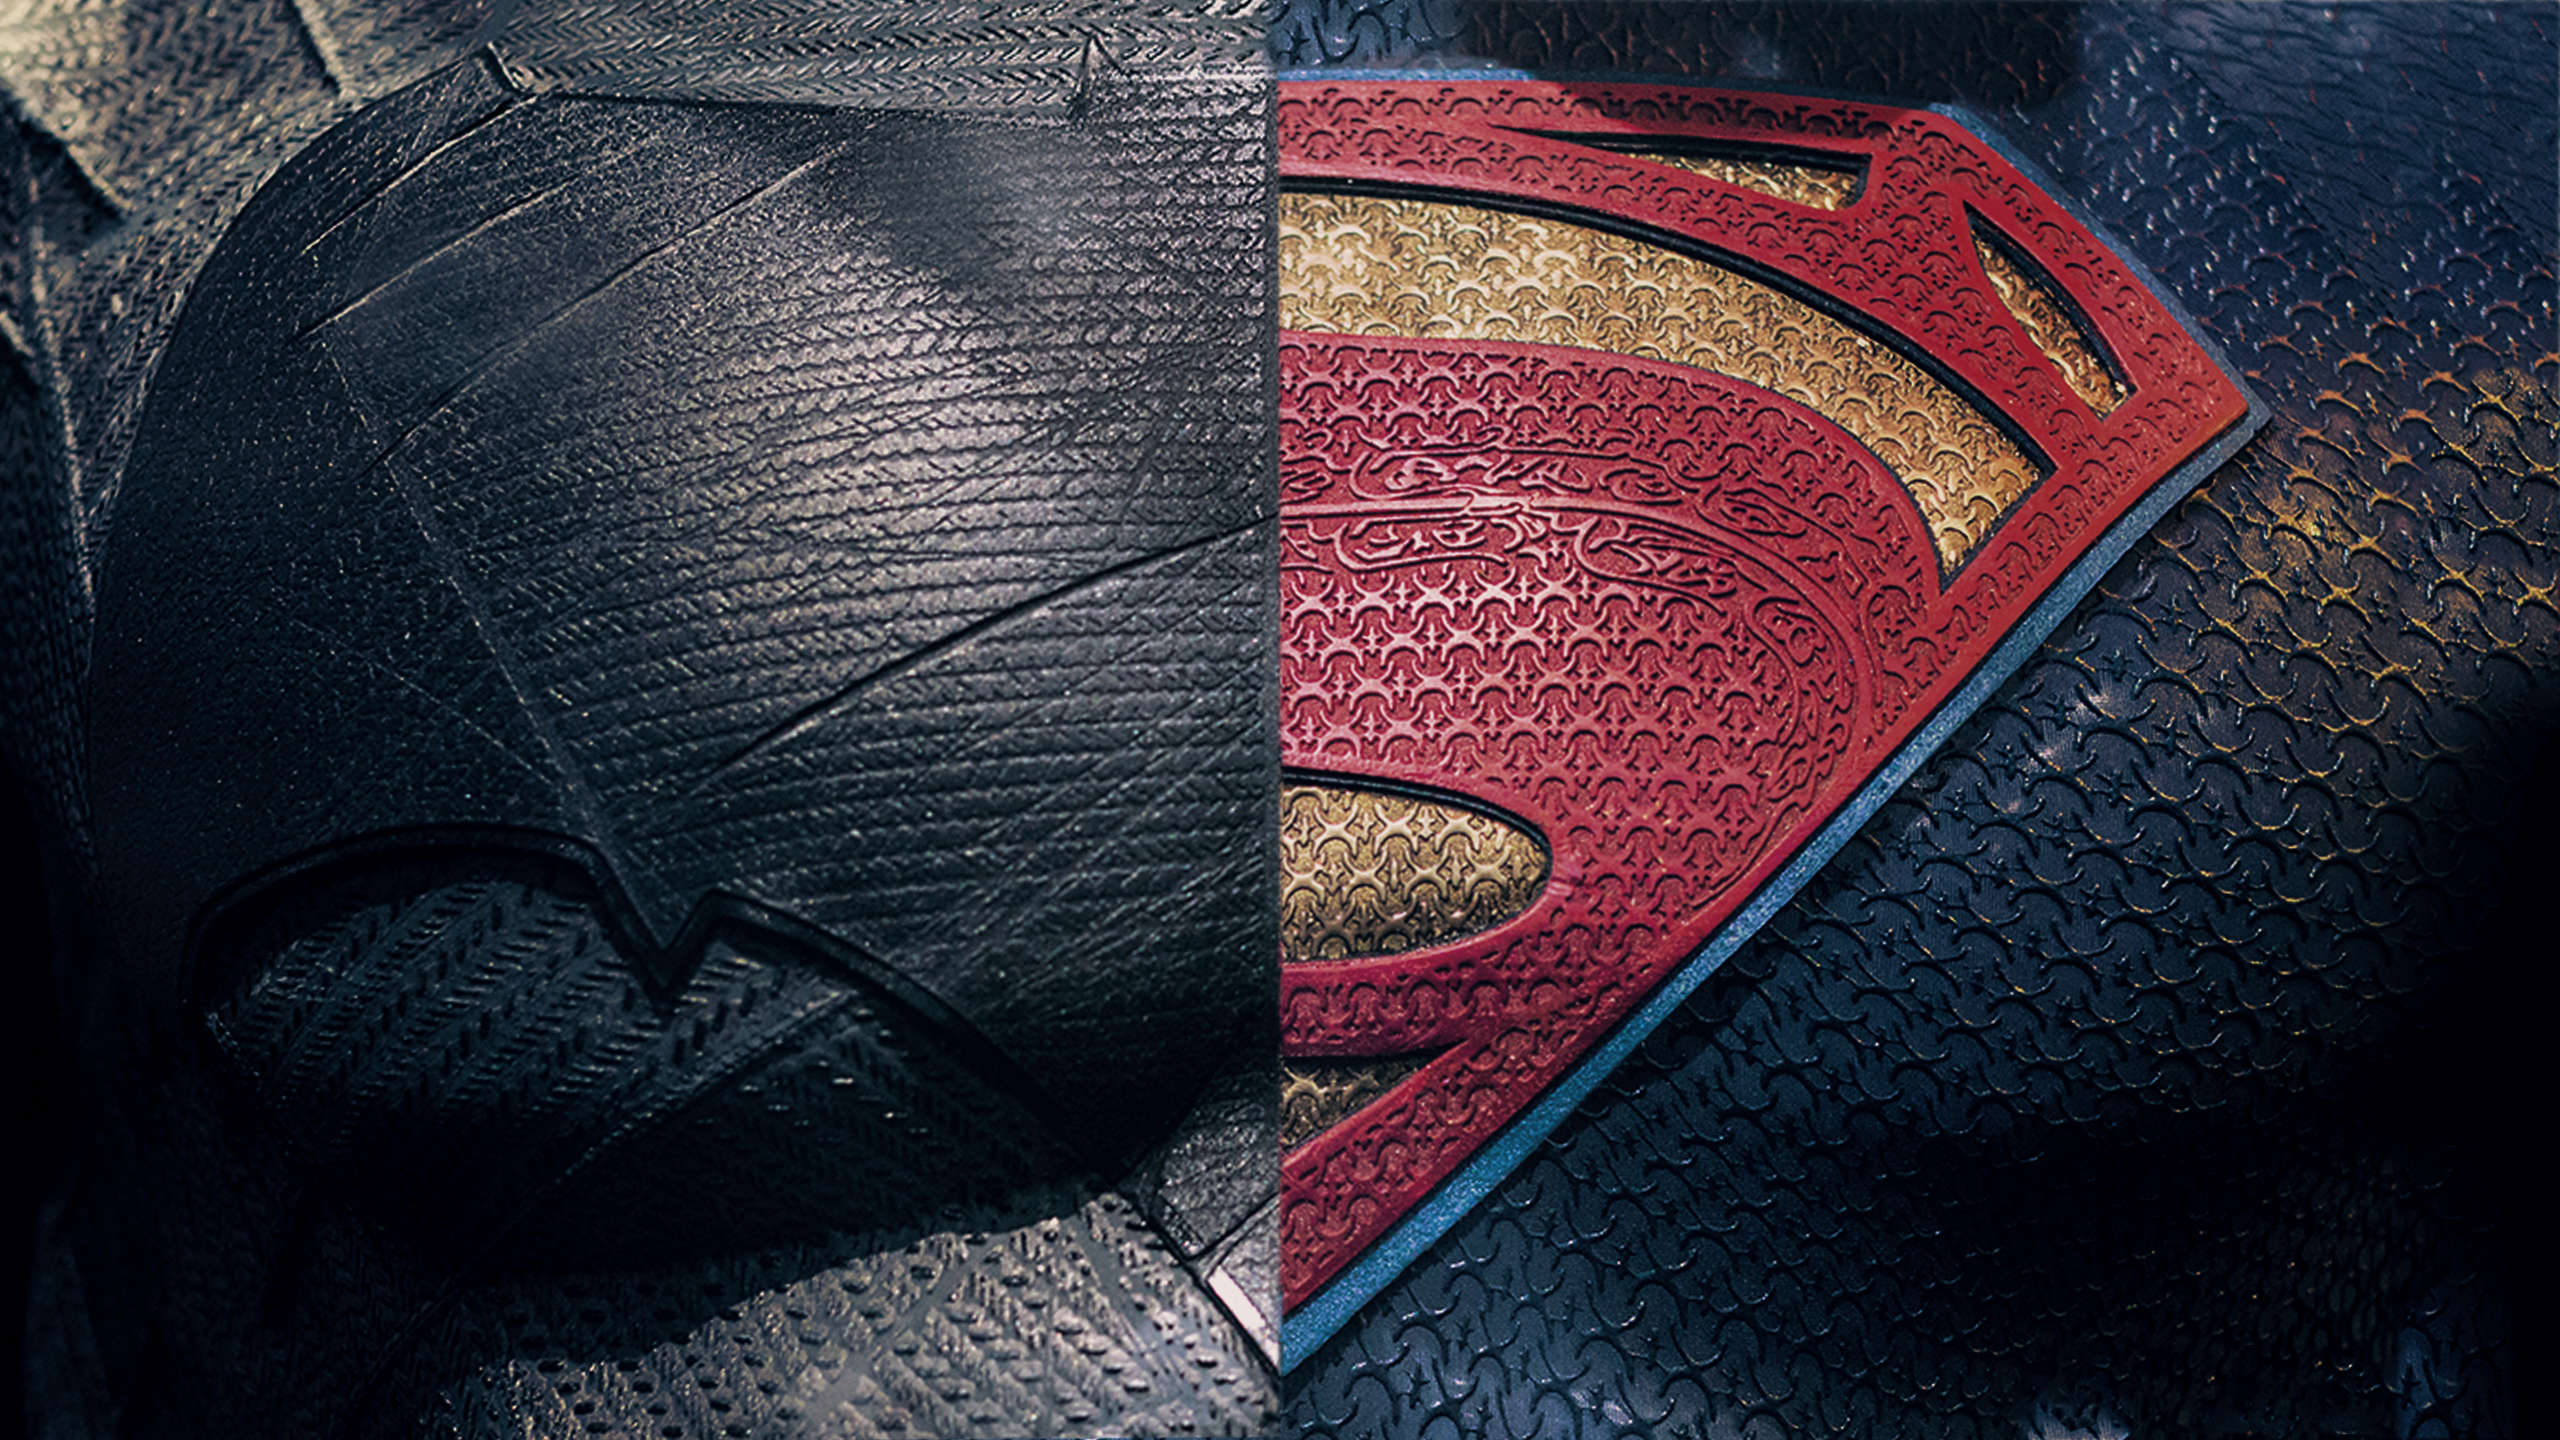 Batman v superman wallpaper   SF Wallpaper 2560x1440